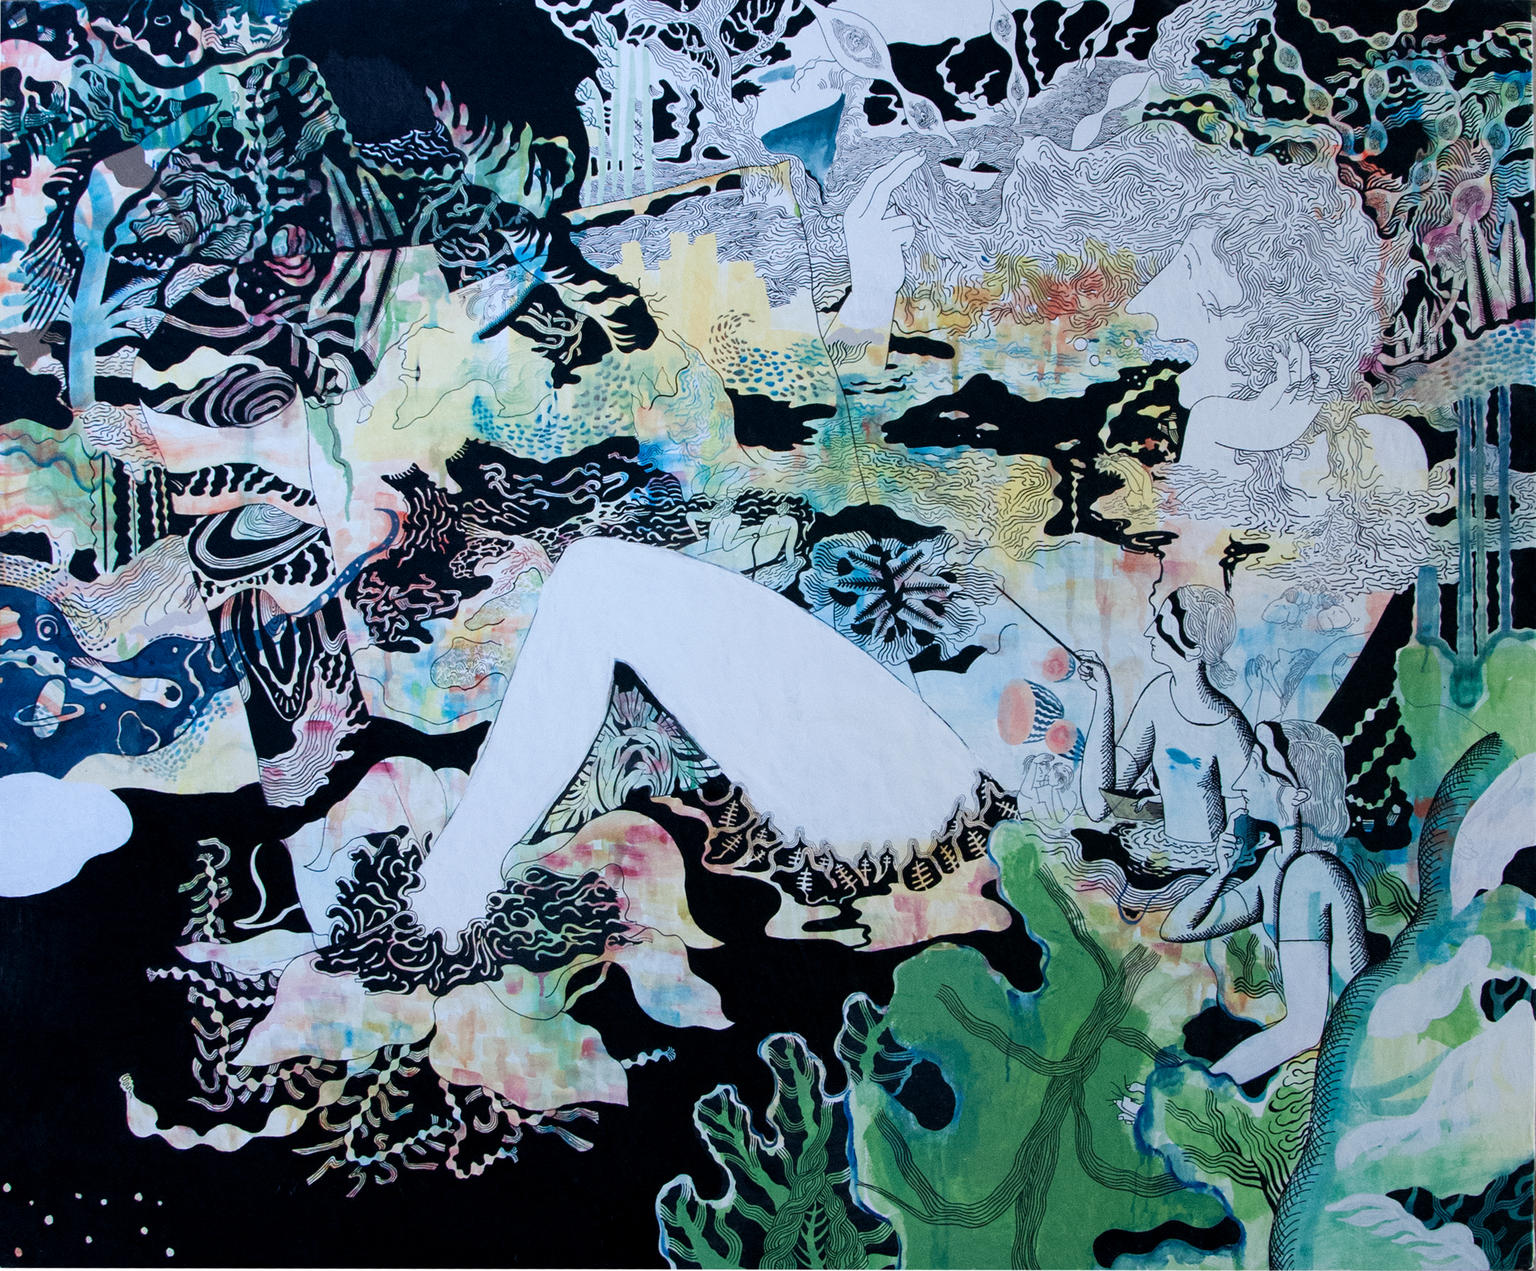 http://ytph.fr/sites/default/files/styles/work_full_size/public/images/Oeuvres/Peinture_2013/dreamscape_2013.jpg?itok=5zPAZHa6